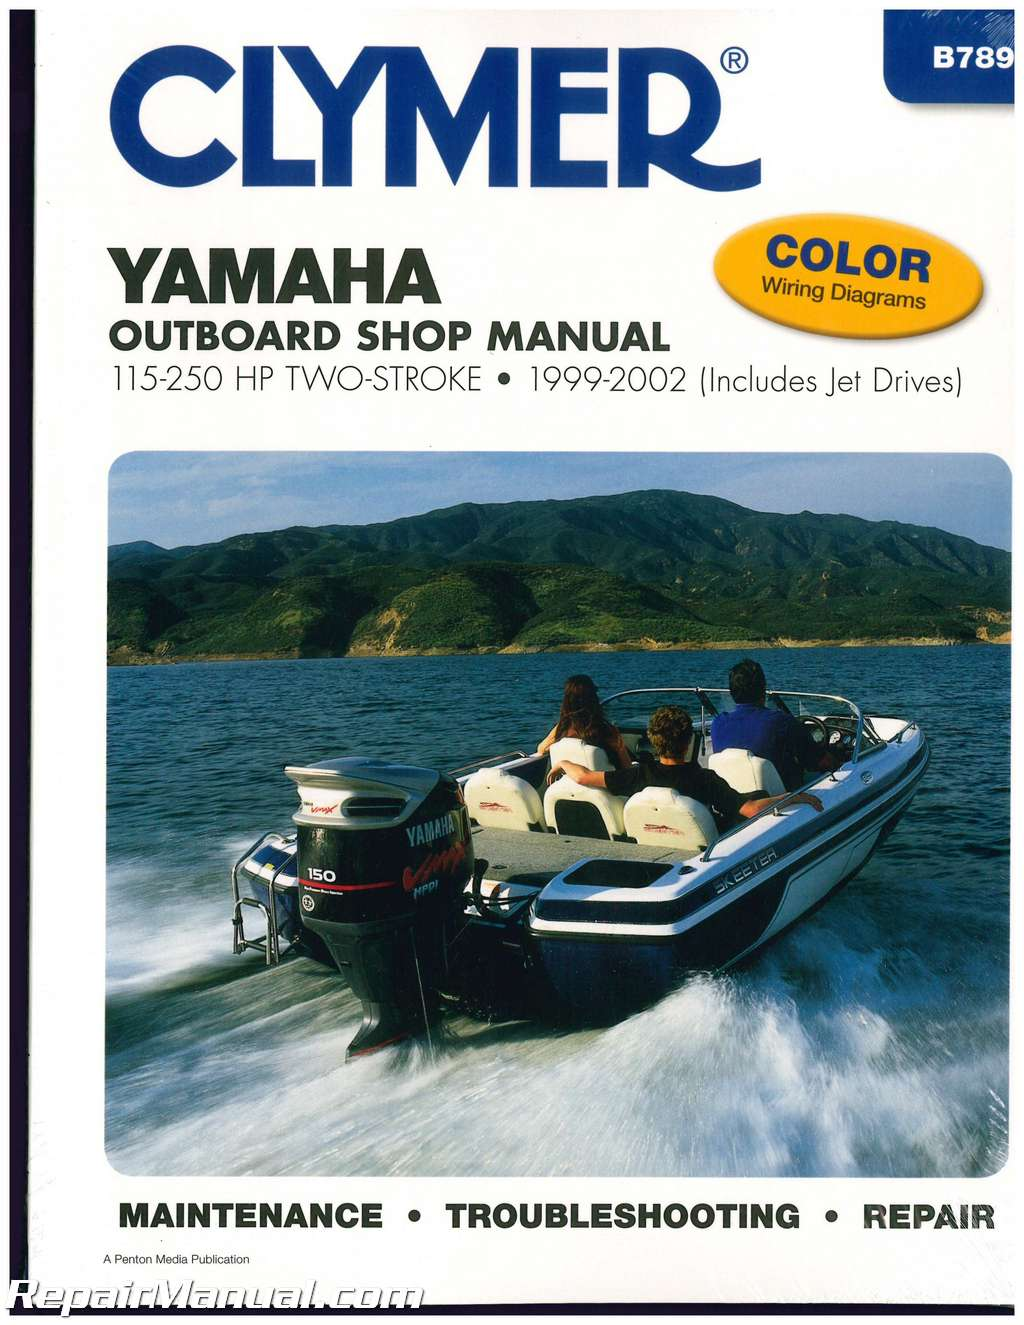 Clymer Yamaha 115-250 hp Two-Stroke Outboards 1999-2002 Boat Repair Manual